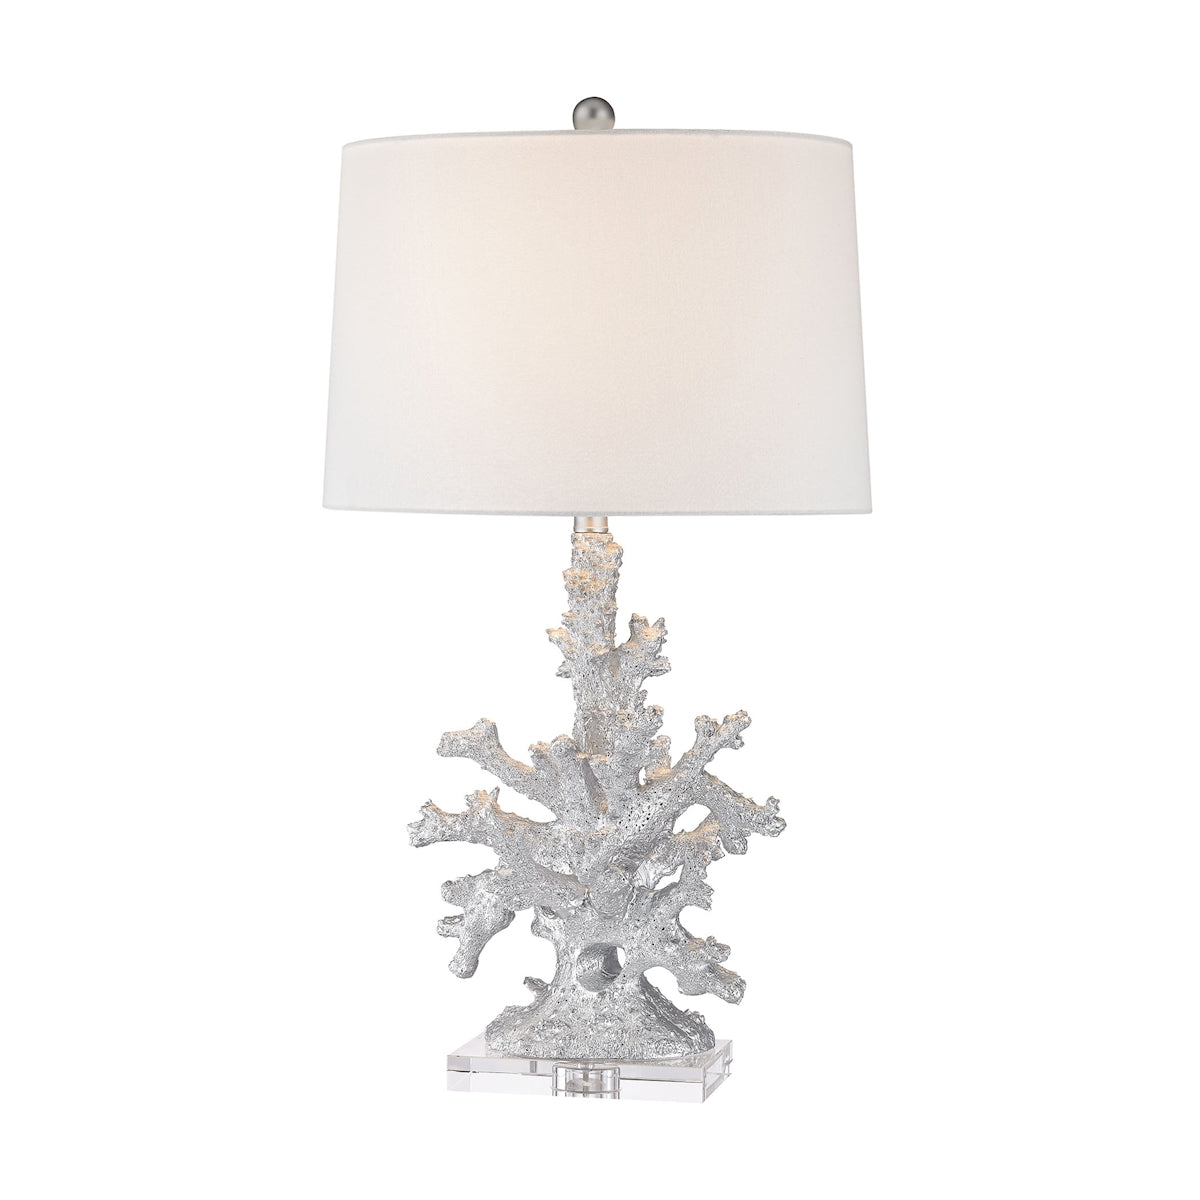 Trunk Bay 1 Light Table Lamp In Silver